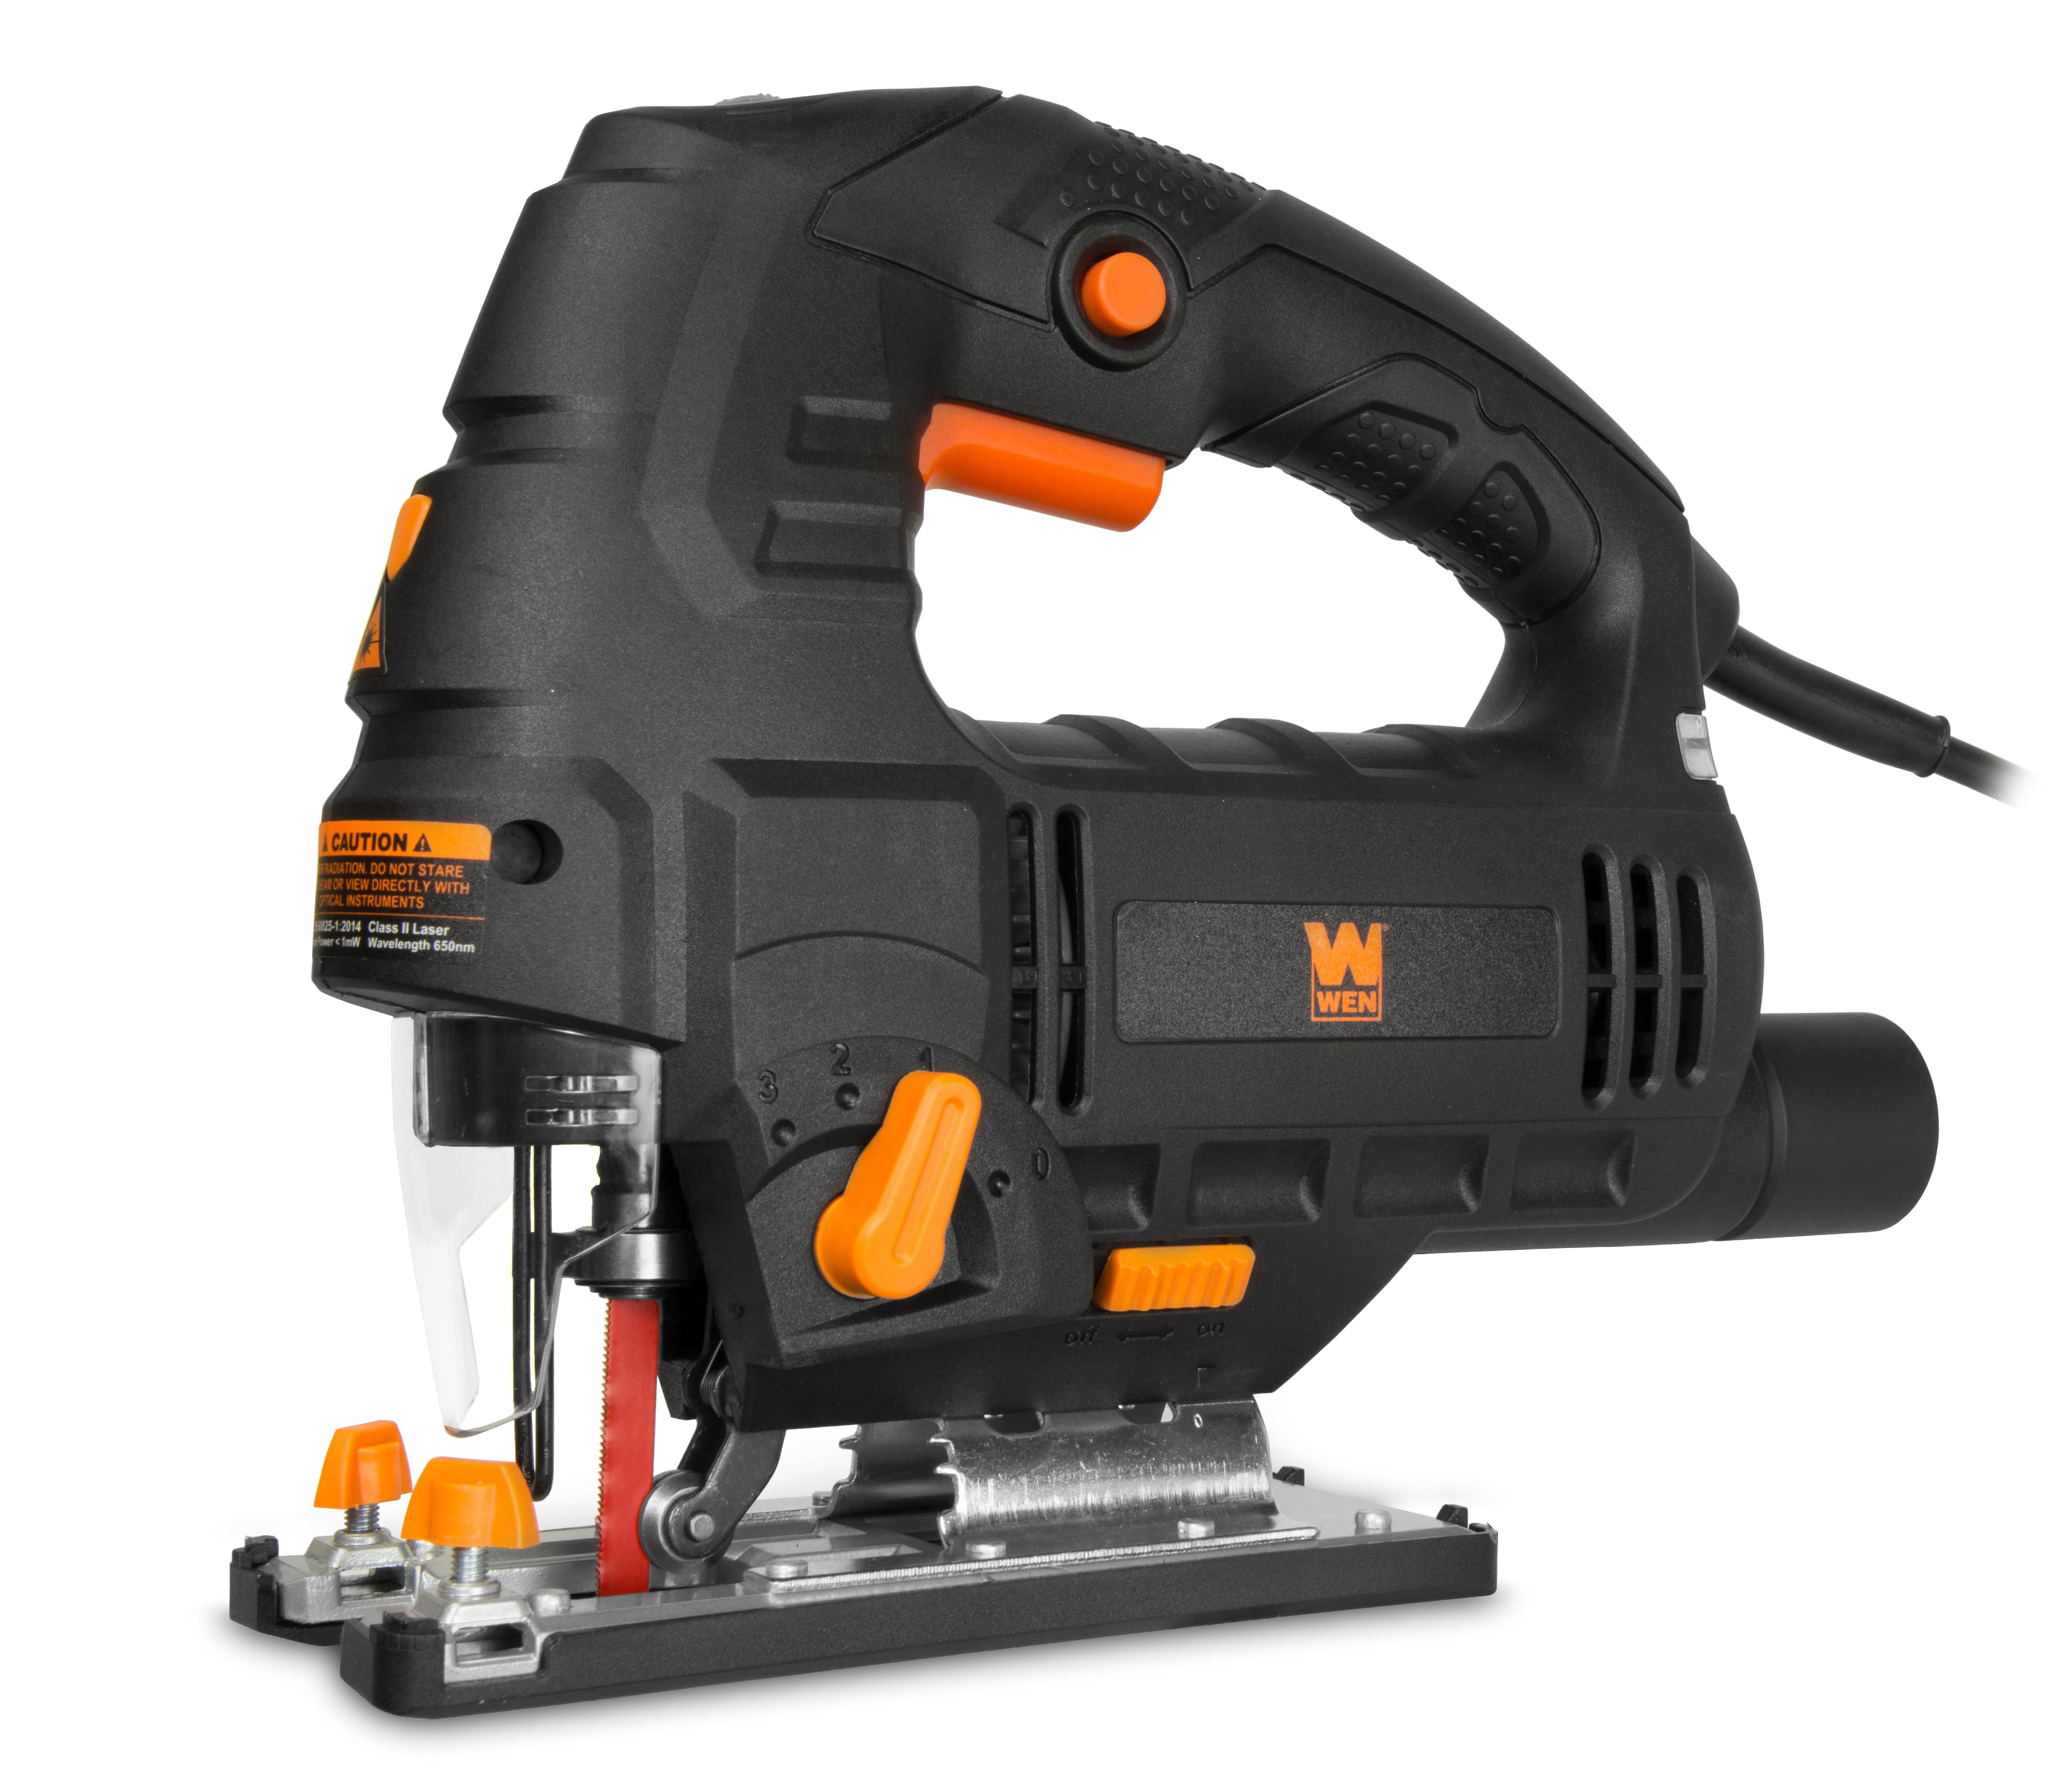 WEN 6.6-Amp Variable Speed Orbital Jig Saw with Laser and LED Light by WEN